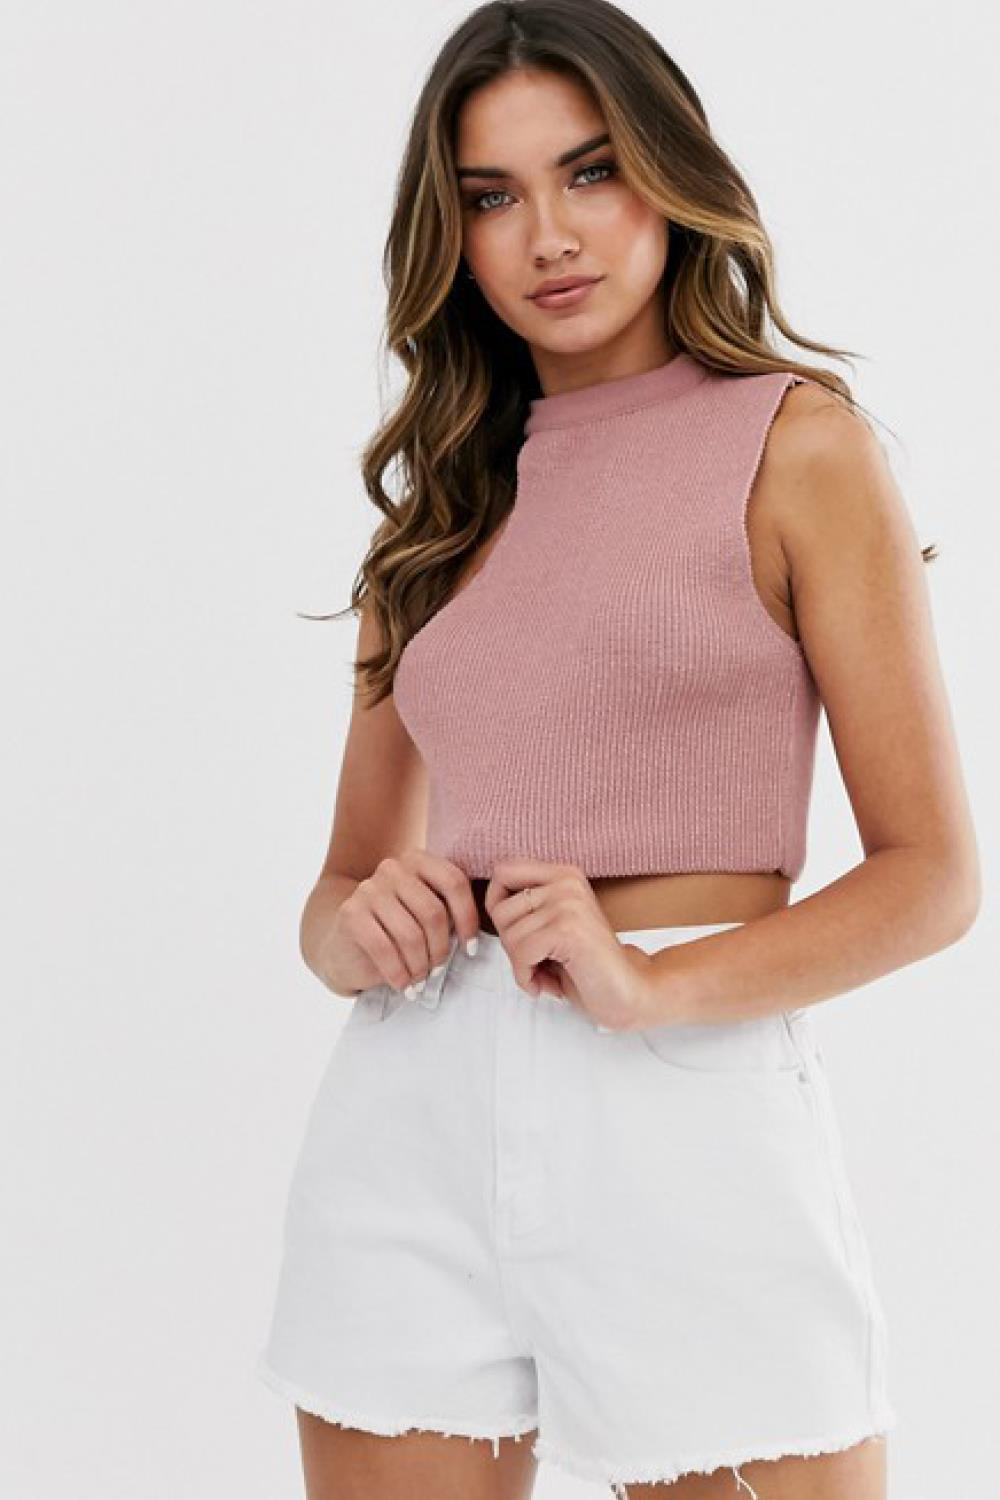 ropa de moda novedades low cost top missguided 19,99€